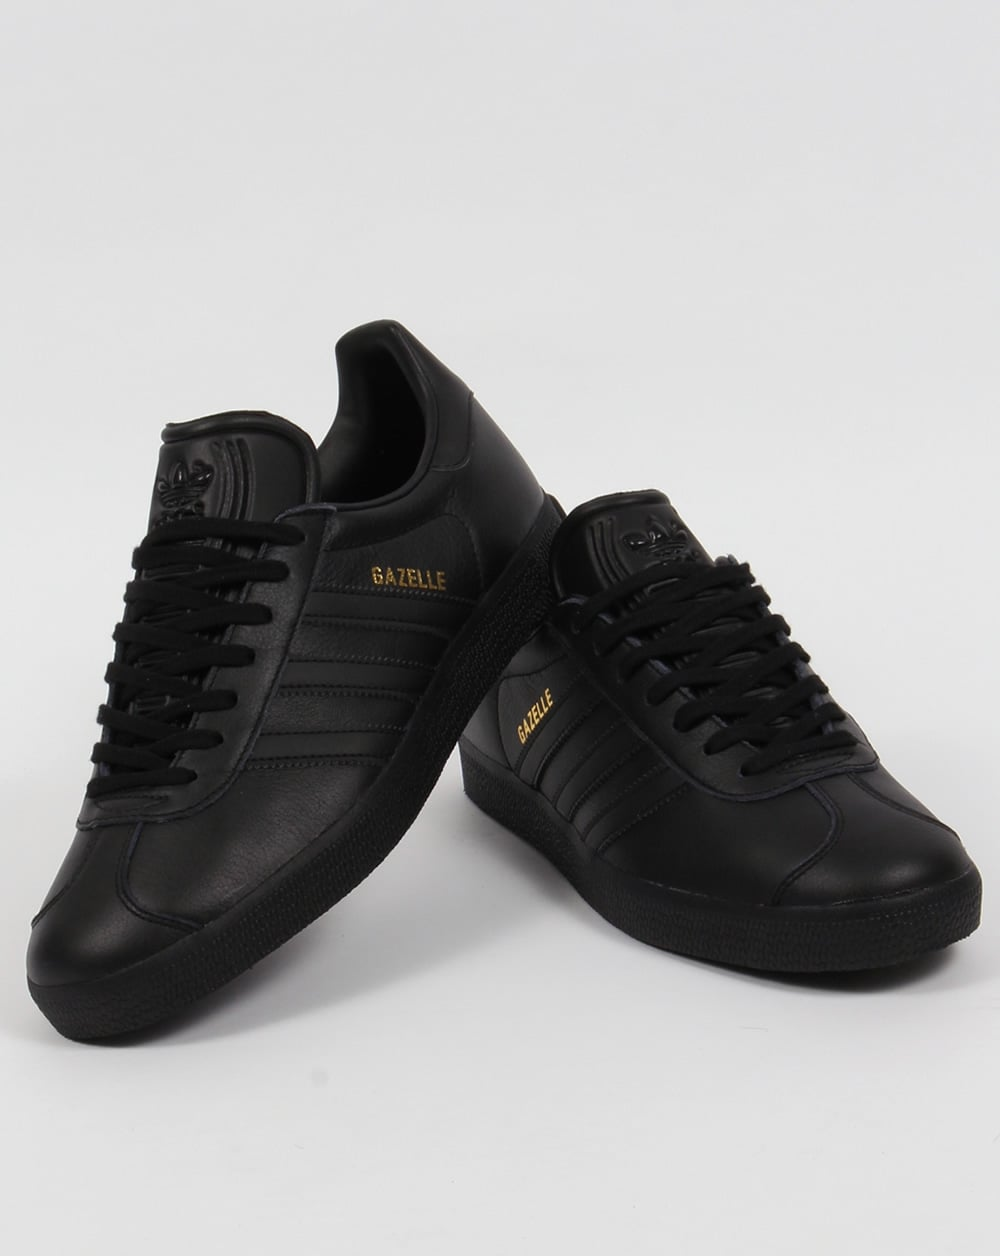 1e6ec5066e84 Adidas Gazelle Leather Trainers Triple Black